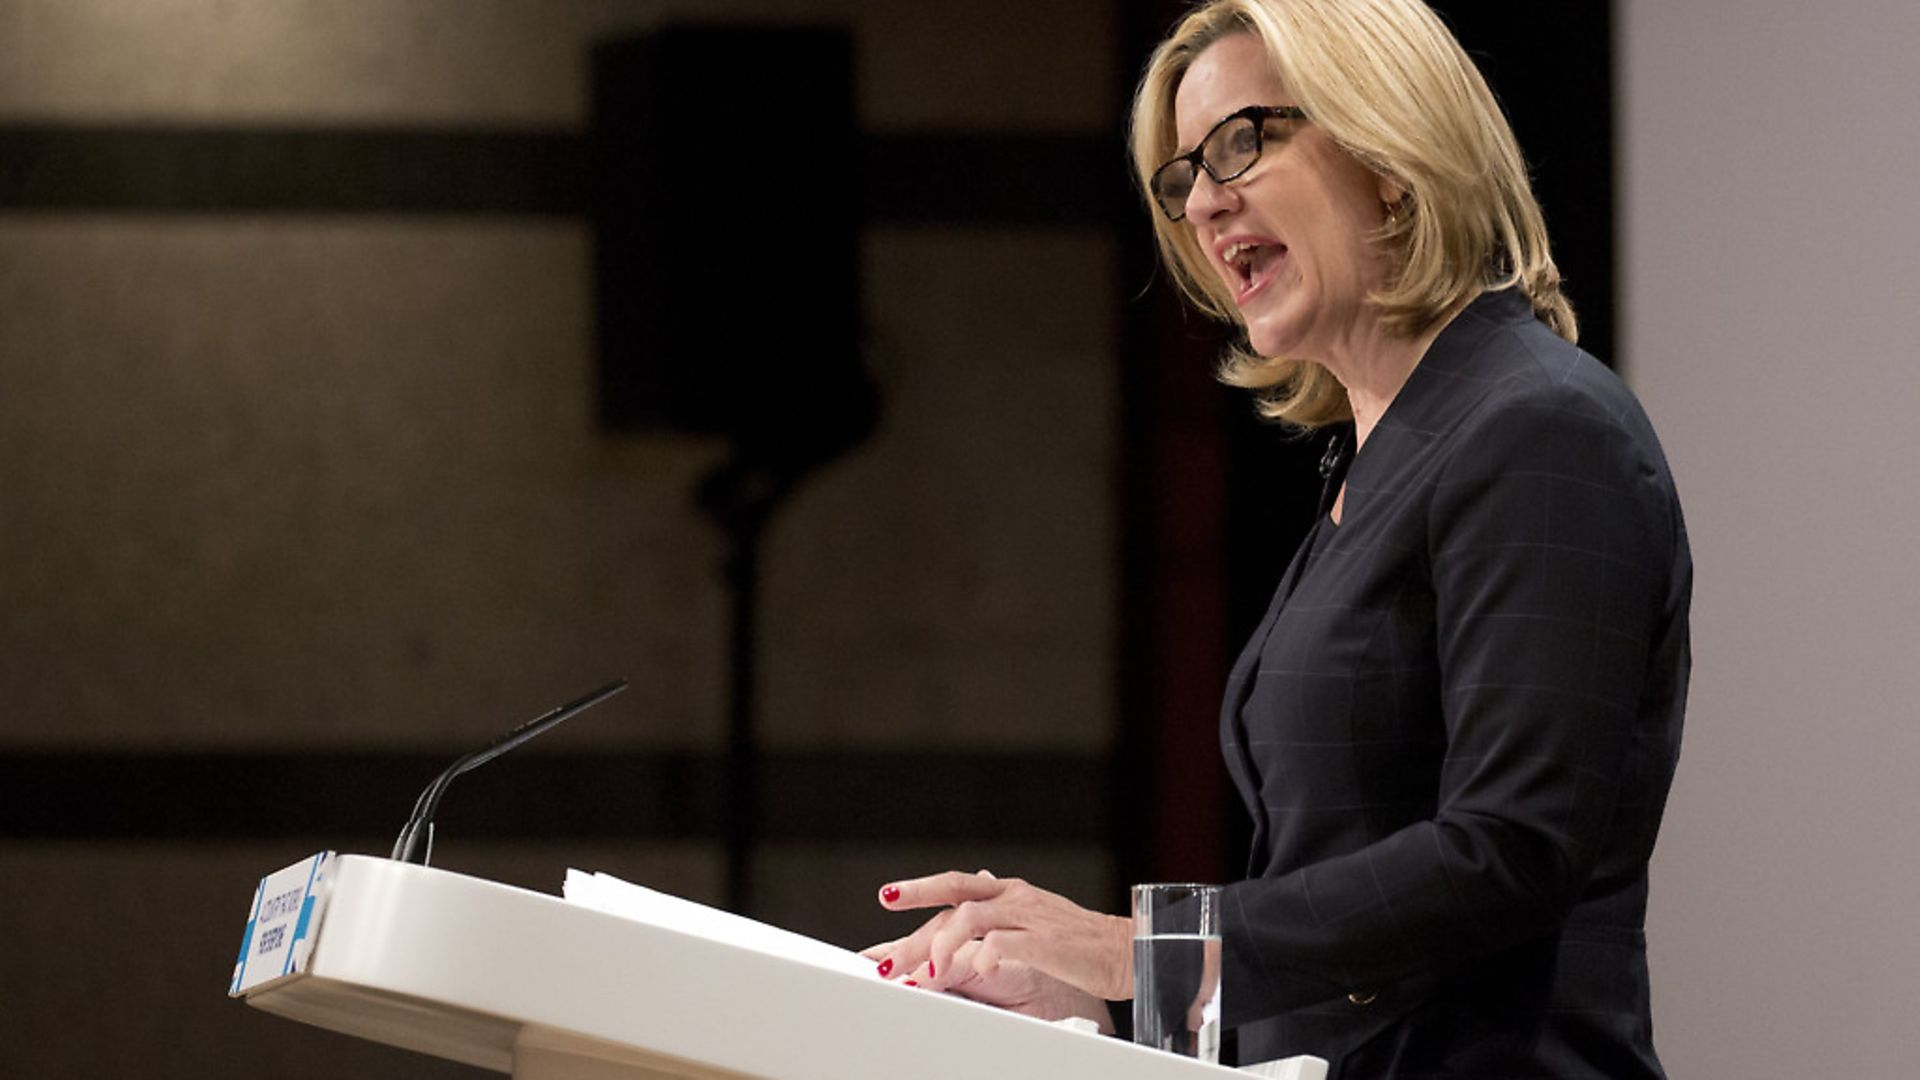 Amber Rudd at Conservative Party Conference in Birmingham. Photograph: Isabel Infantes/PA. - Credit: EMPICS Entertainment